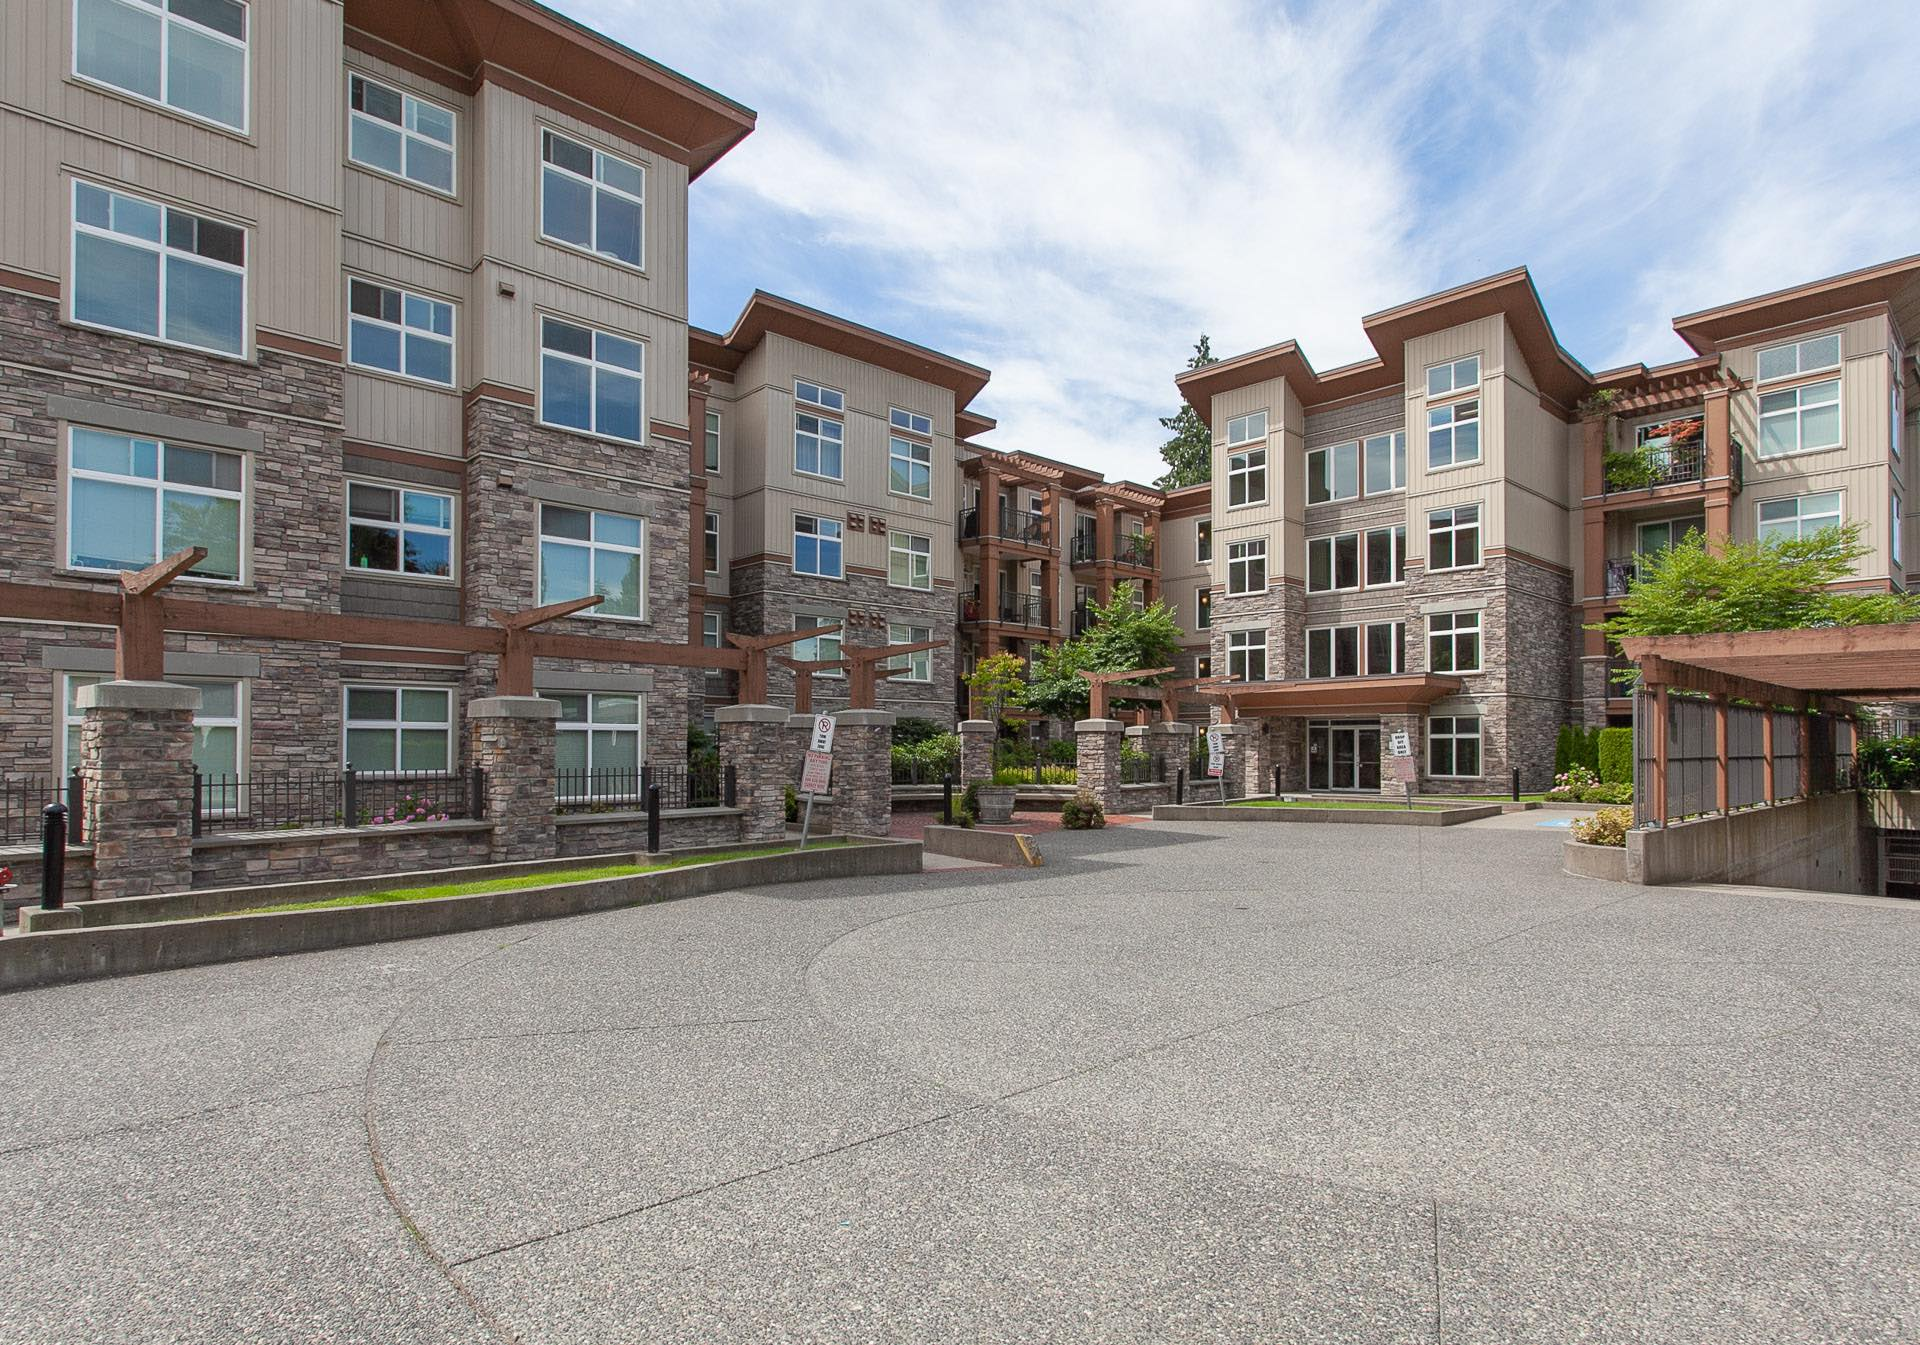 SOLD - ETHICAL GARDENS - 302 10237 133 STREETsurrey, bc